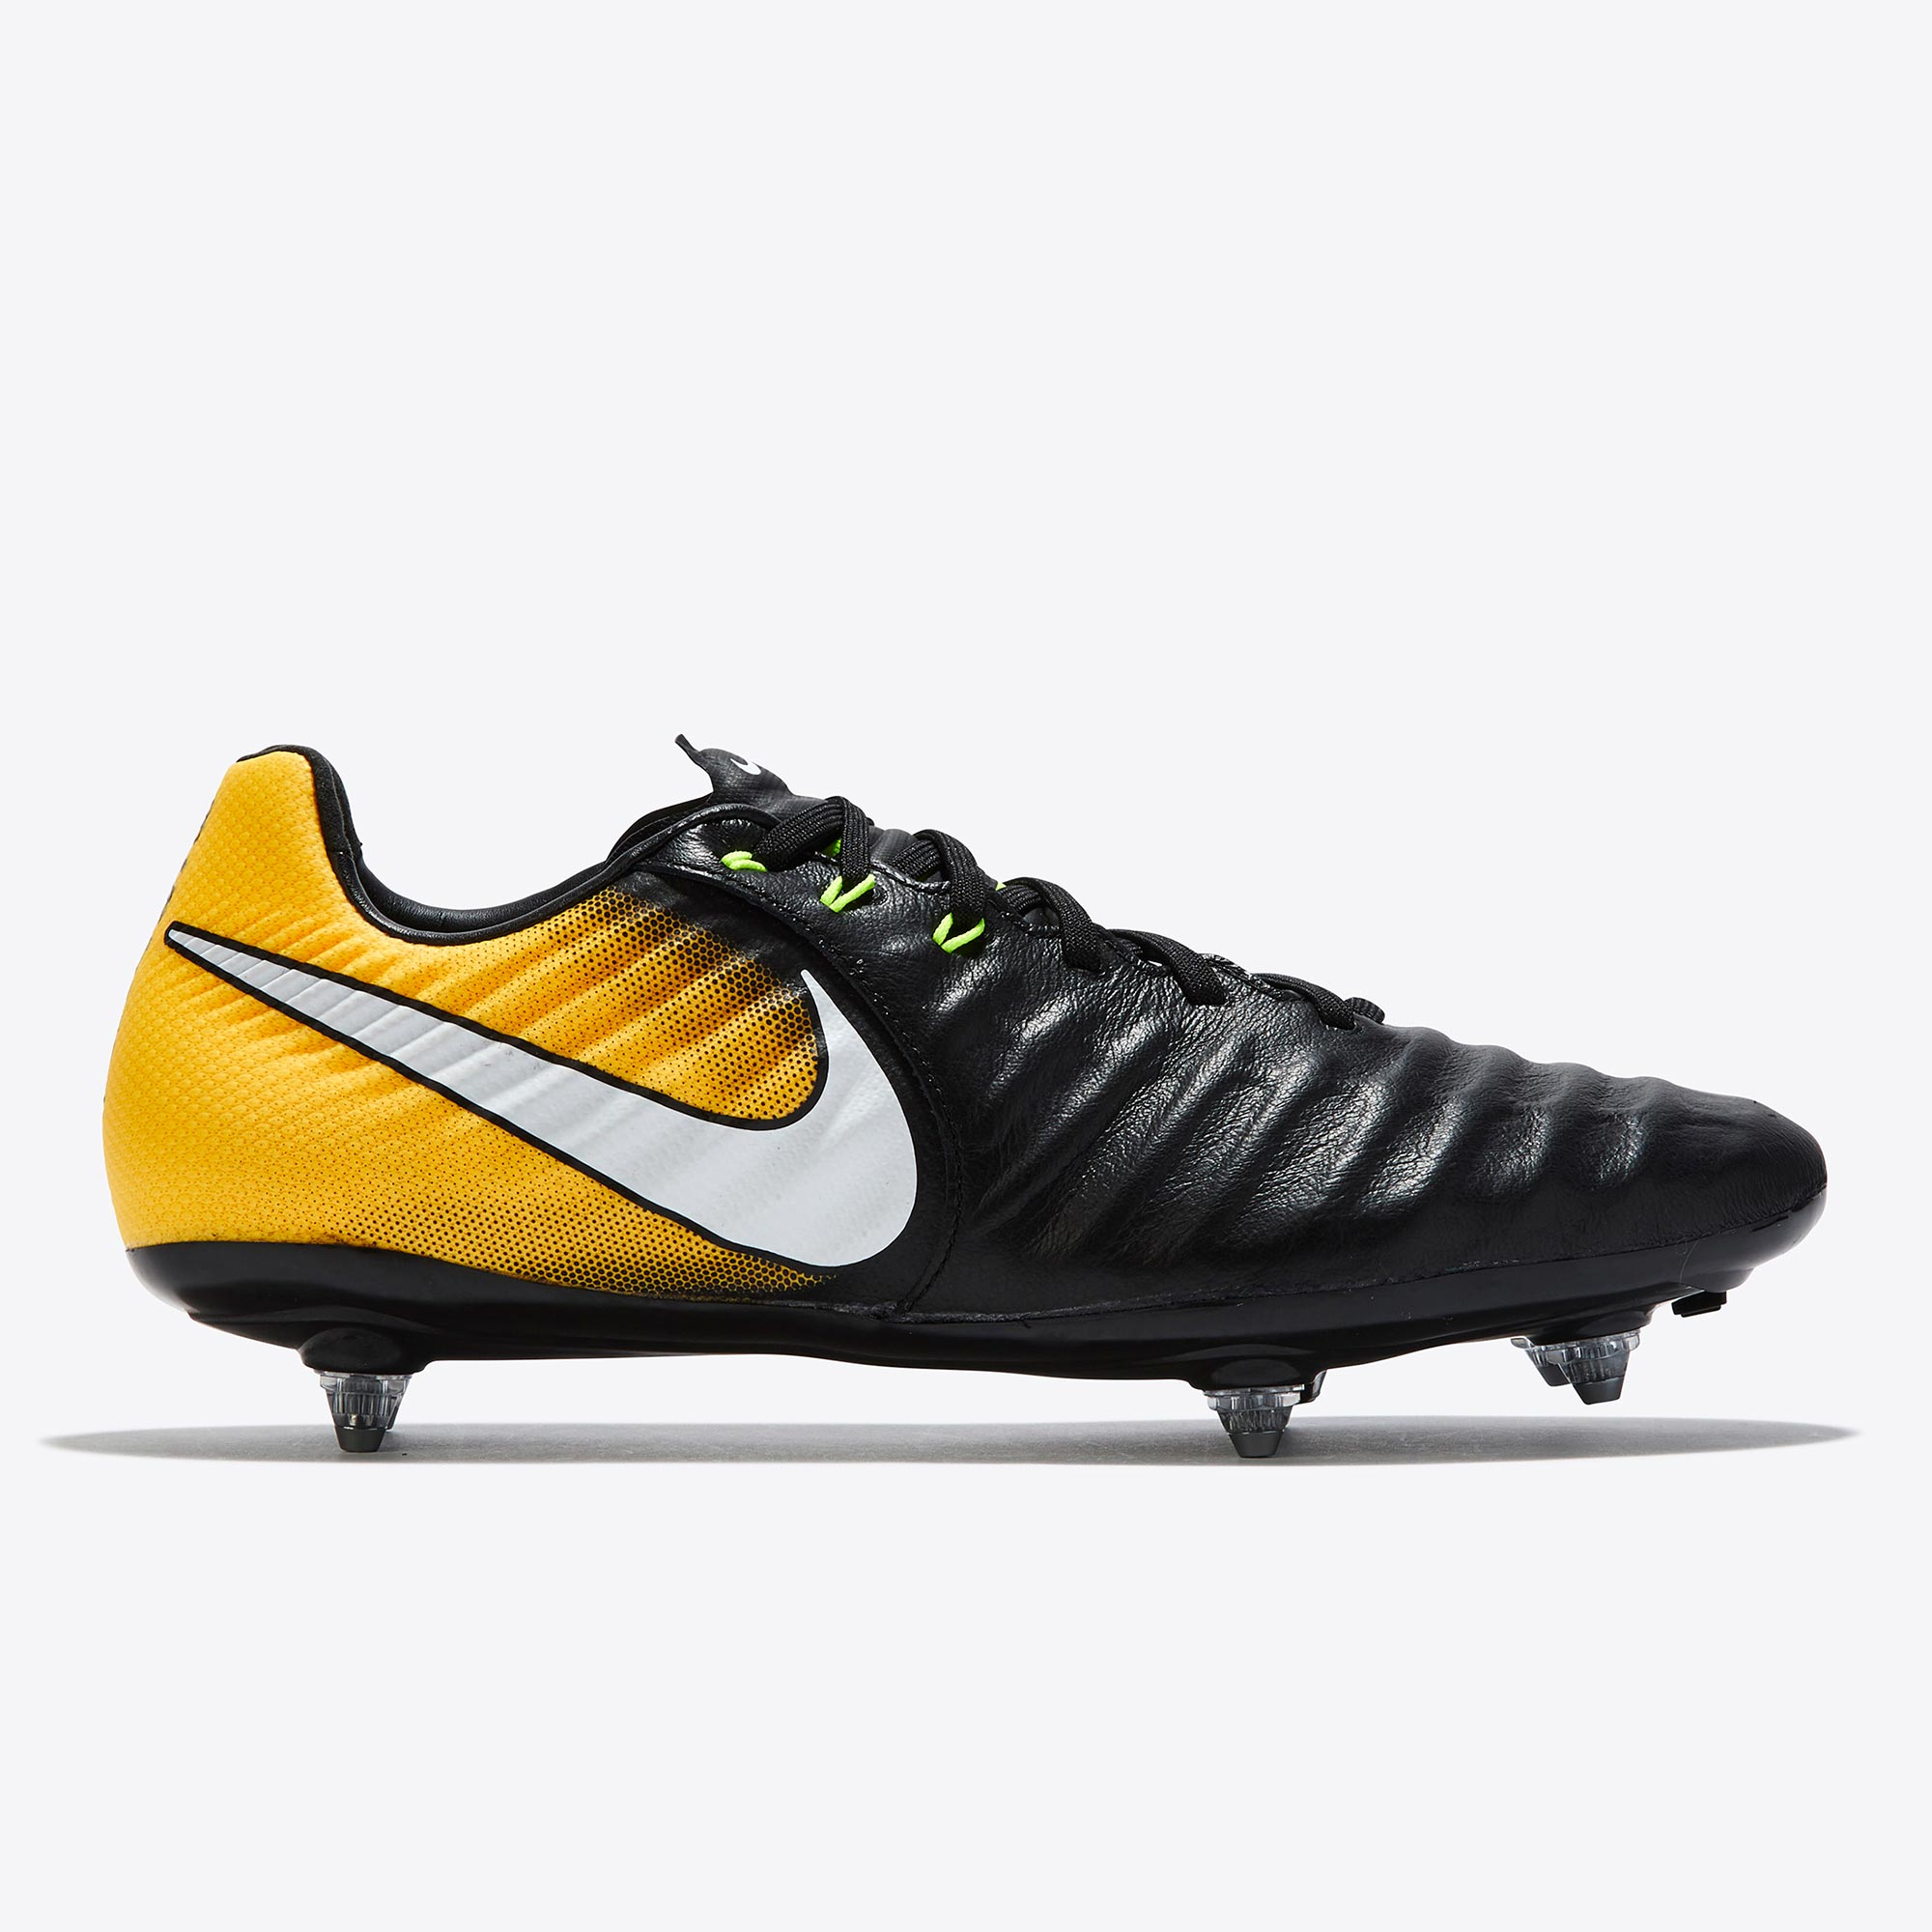 Nike Tiempo Legacy III Soft Ground Football Boots - Black/White/Laser